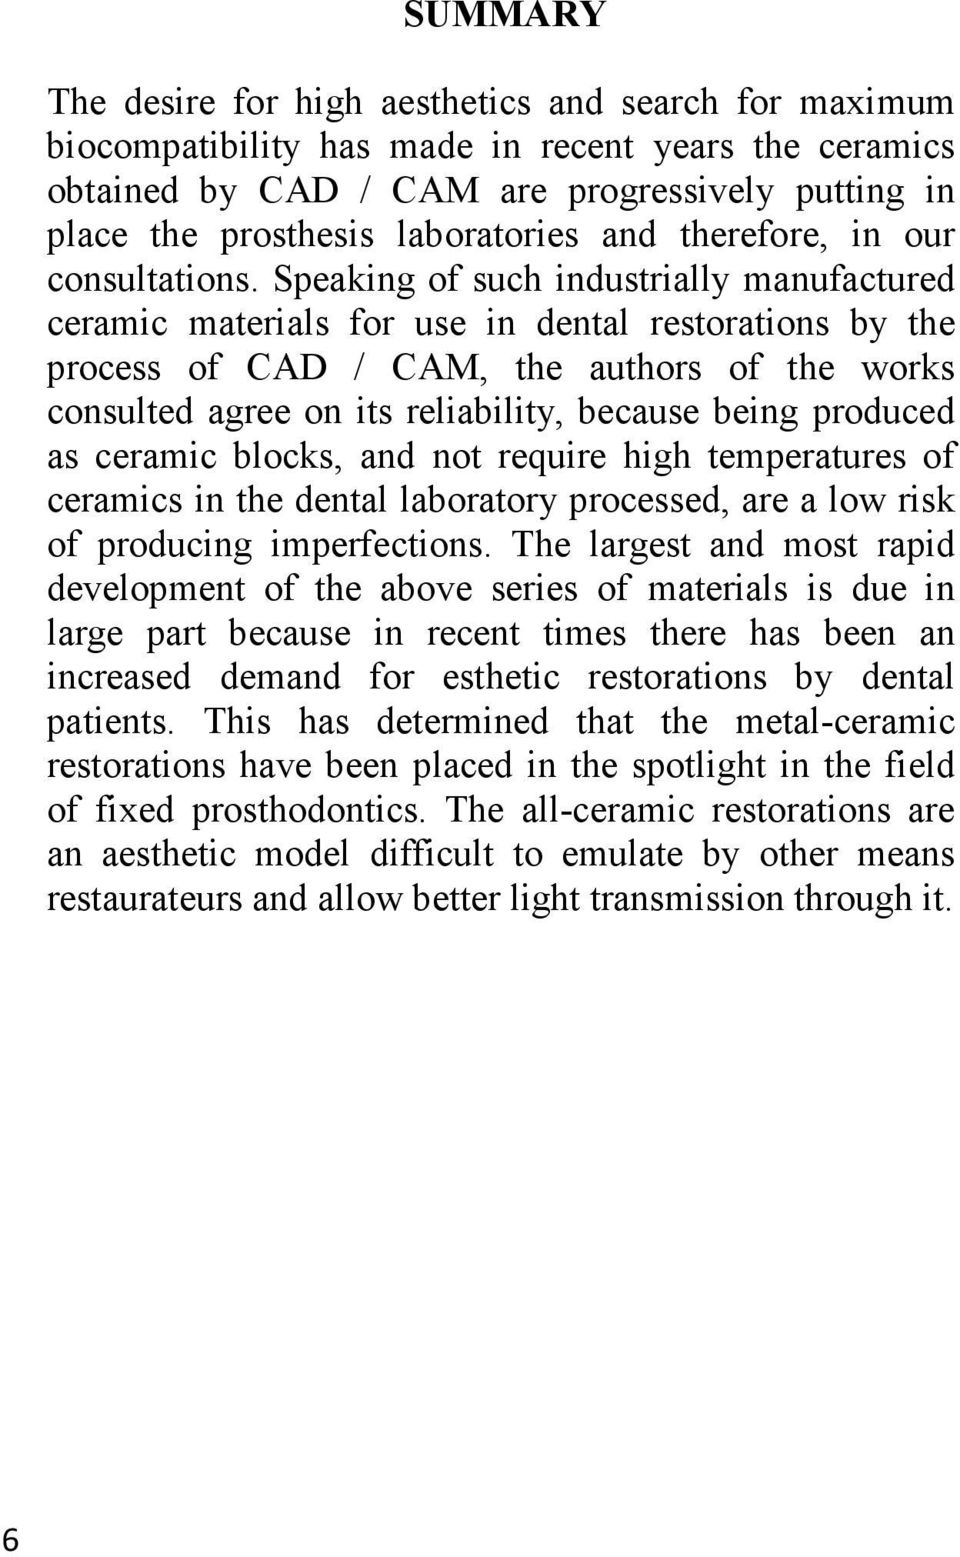 Speaking of such industrially manufactured ceramic materials for use in dental restorations by the process of CAD / CAM, the authors of the works consulted agree on its reliability, because being